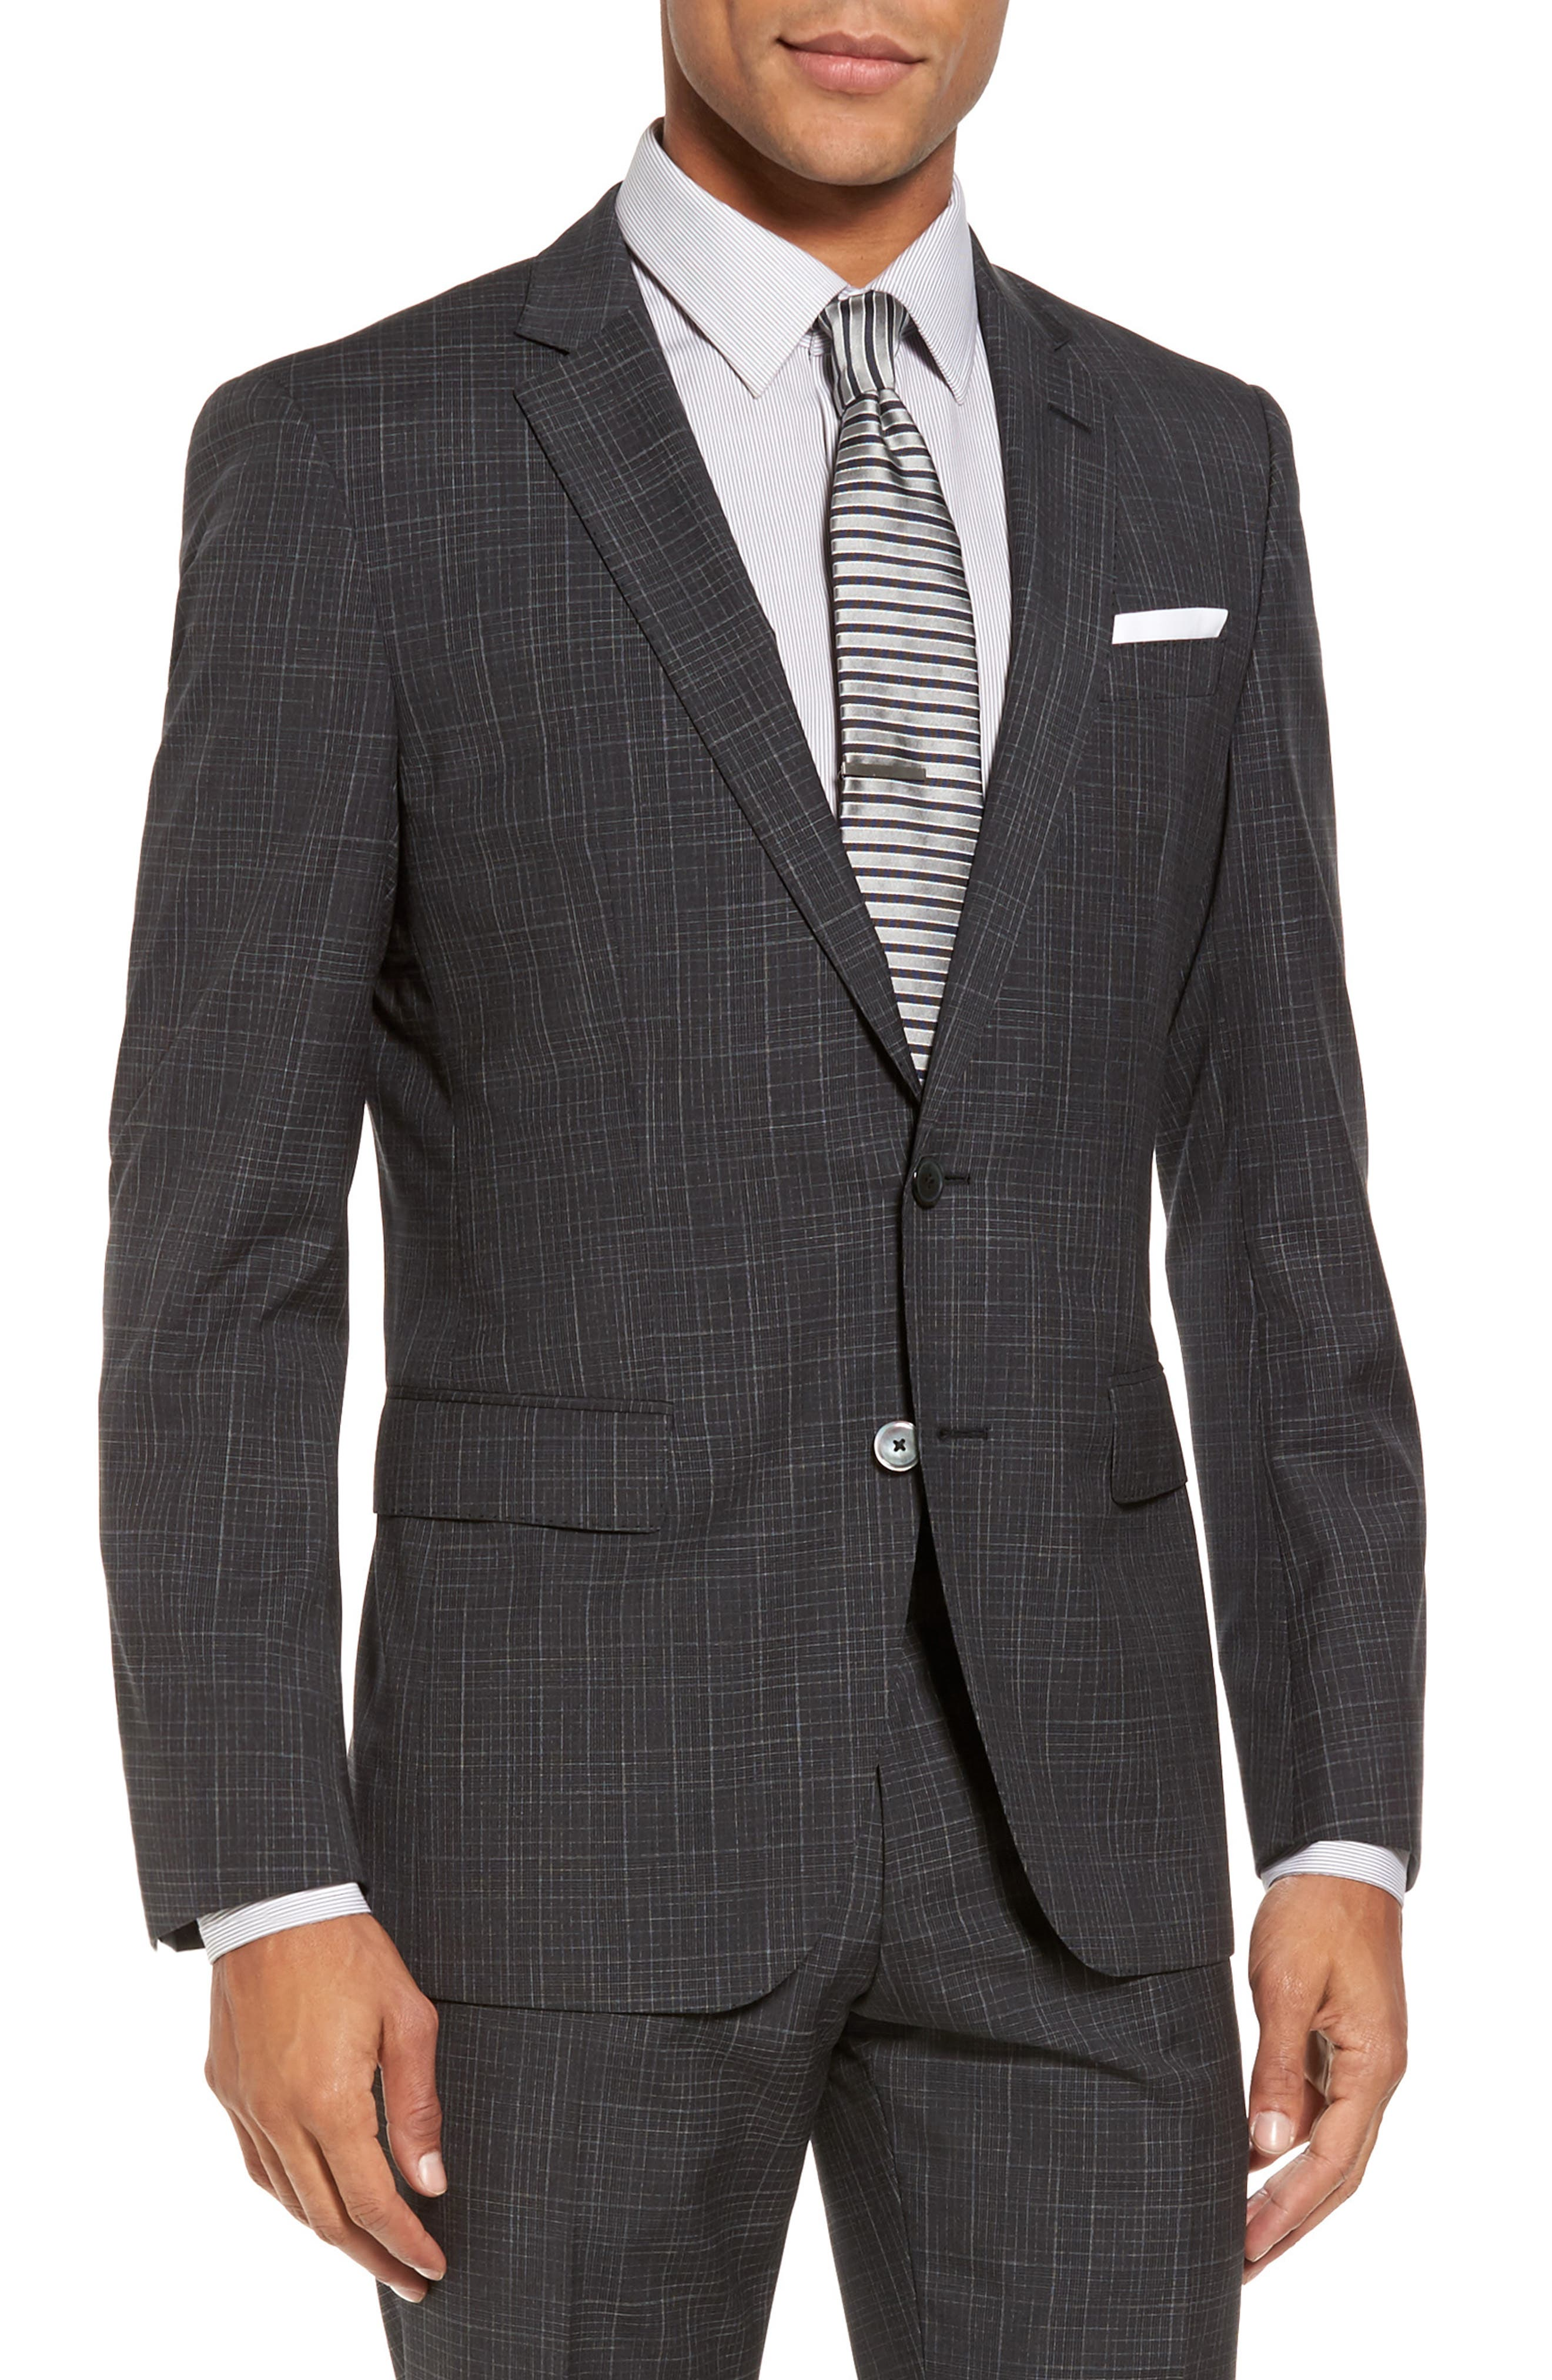 Hutson/Gander Trim Fit Plaid Wool Suit,                             Alternate thumbnail 5, color,                             Open Grey